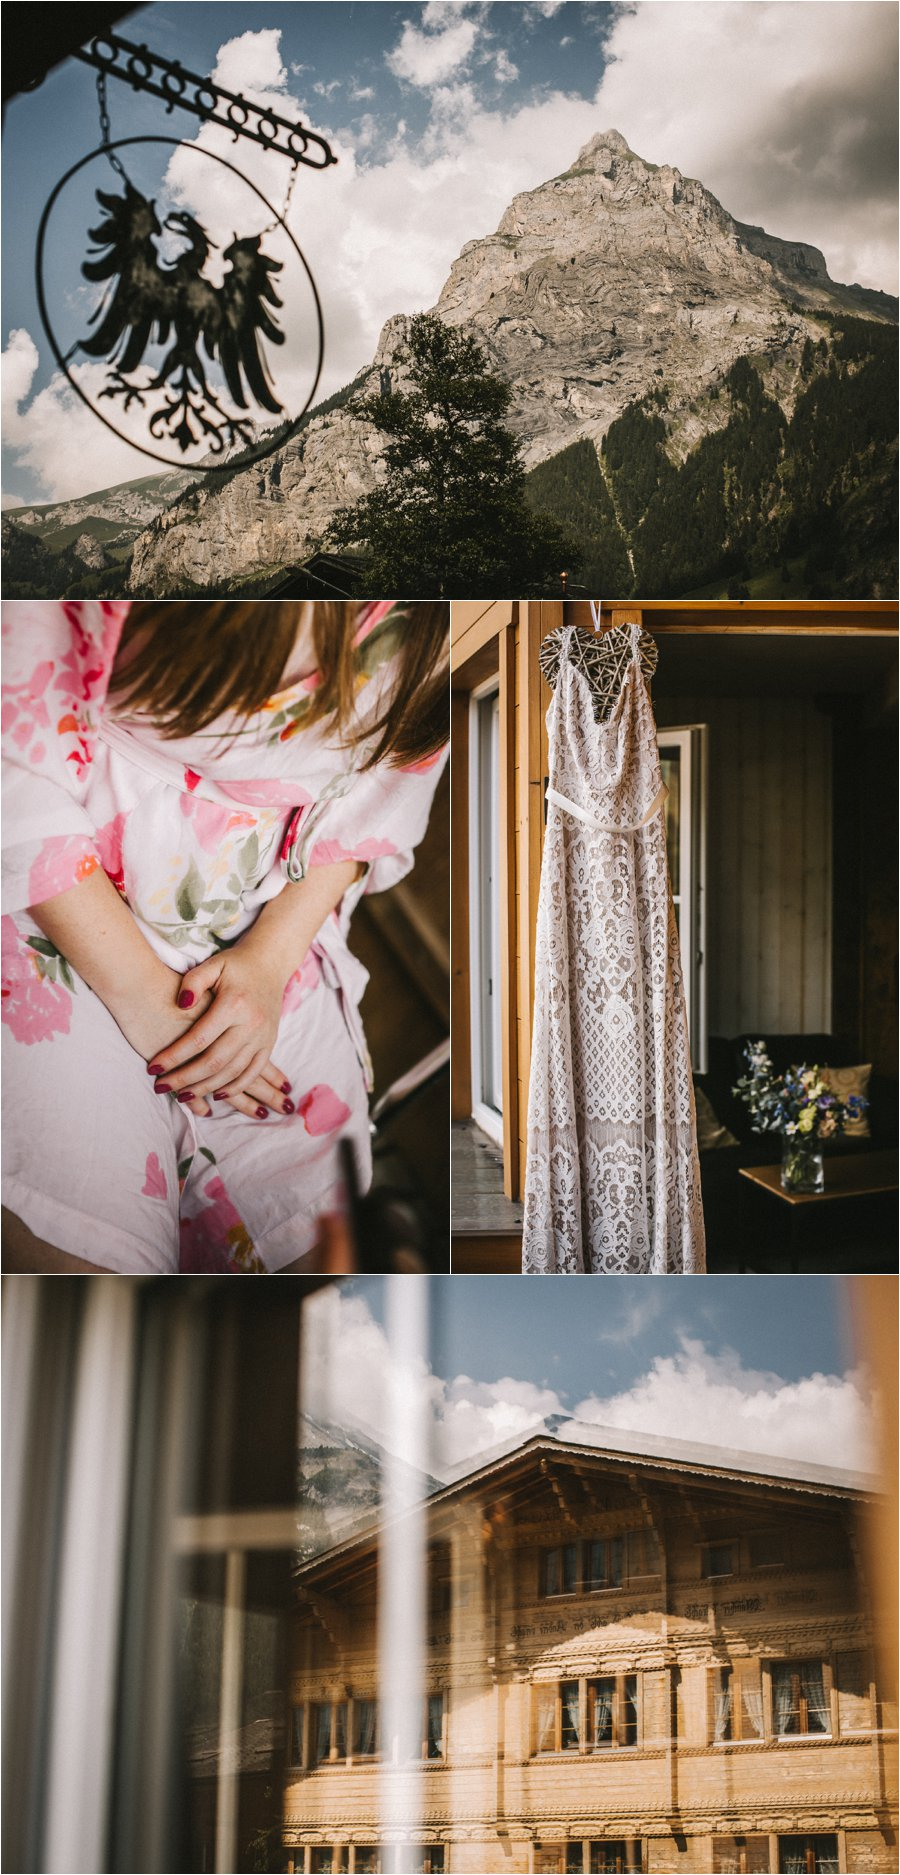 Swiss elopement bridal preparations by Bendik Photography